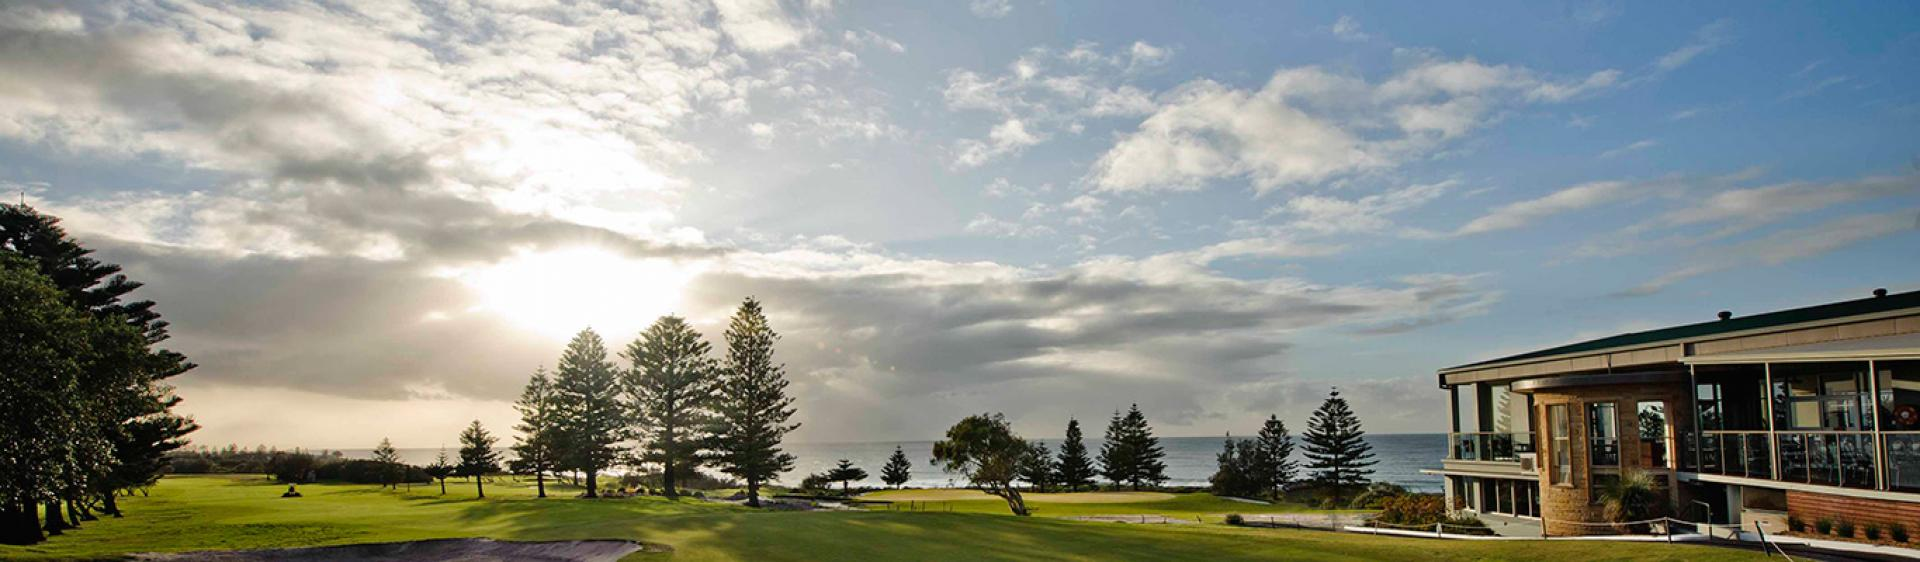 中央海岸 (Central Coast) 贝壳海滩高尔夫俱乐部 (Shelly Beach Golf Club)